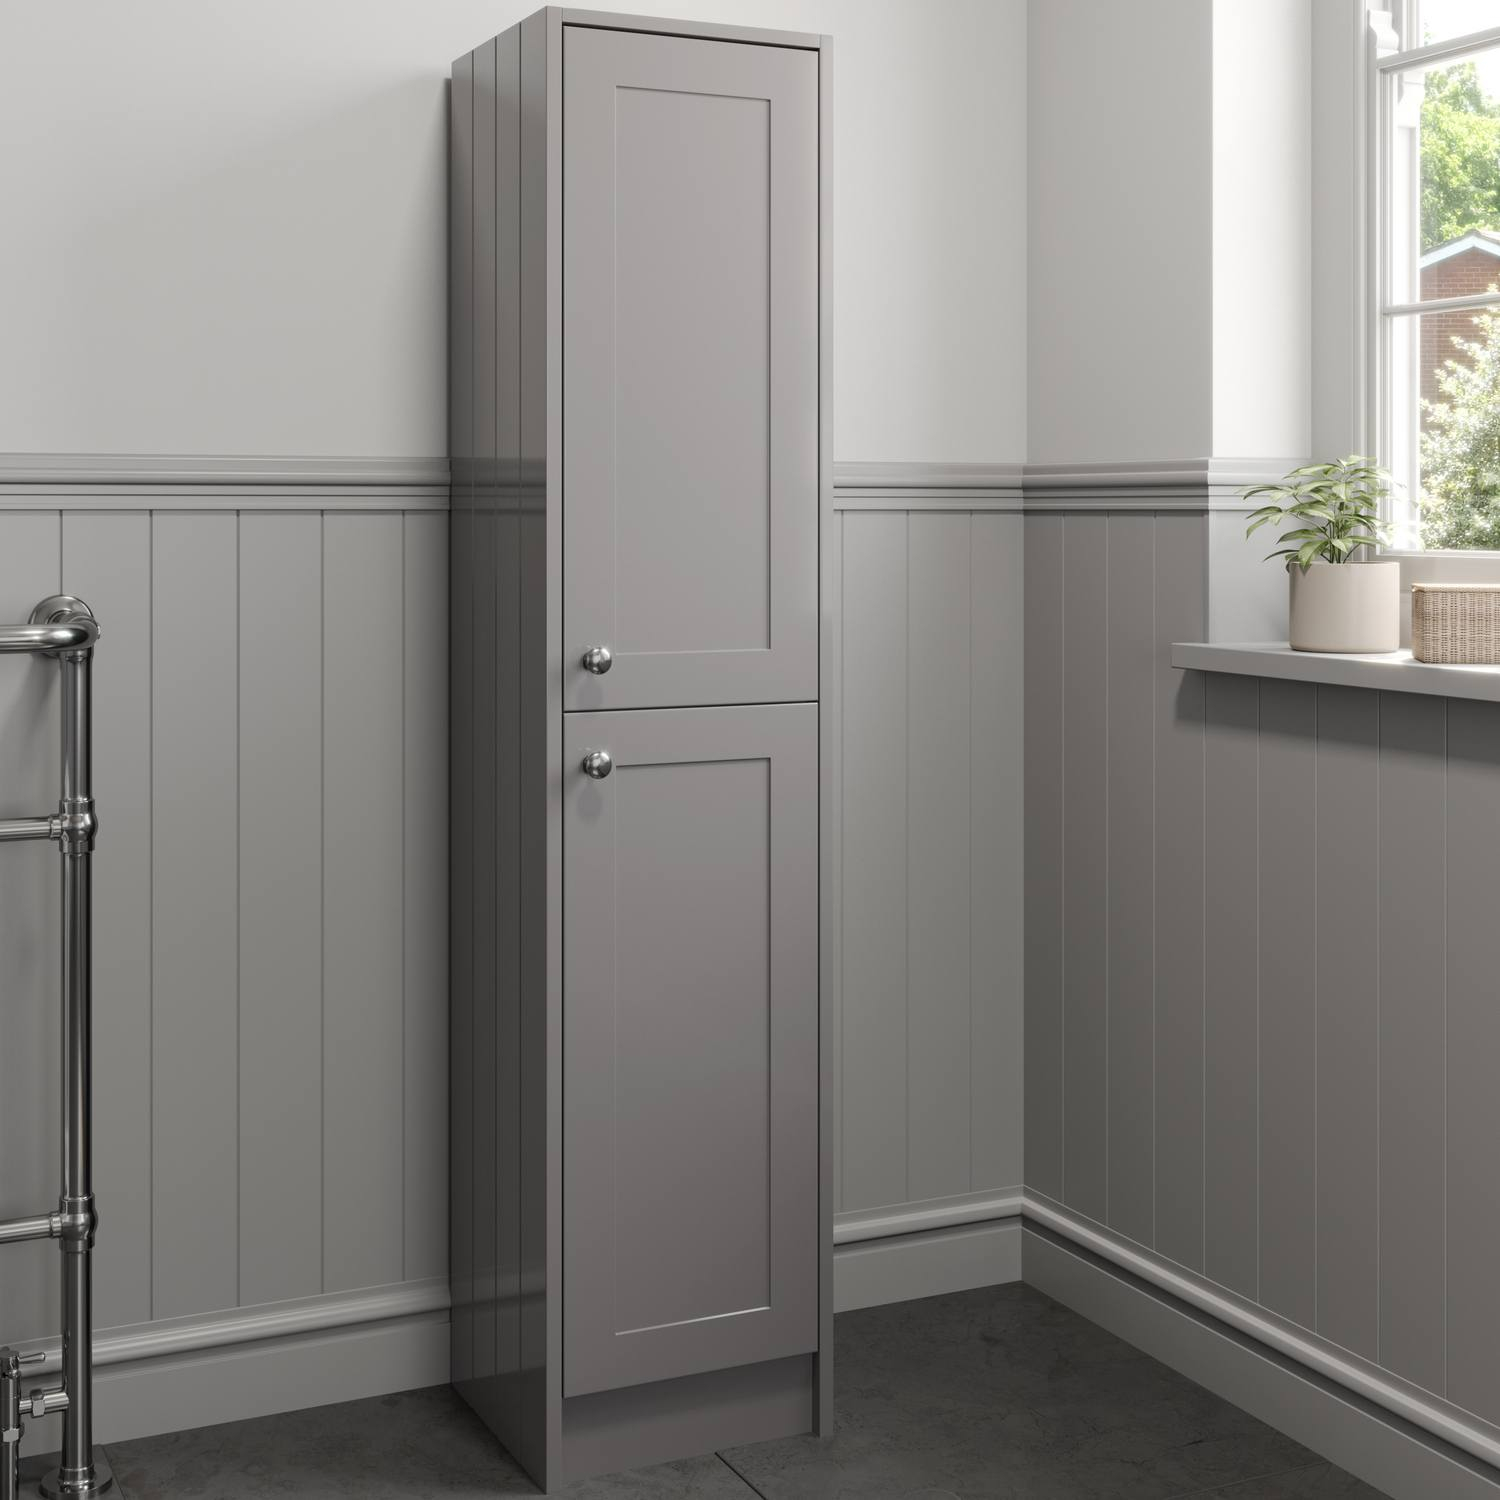 Details About 1600mm Tall Bathroom Storage Cabinet Cupboard Floorstanding Grey Traditional inside size 1500 X 1500